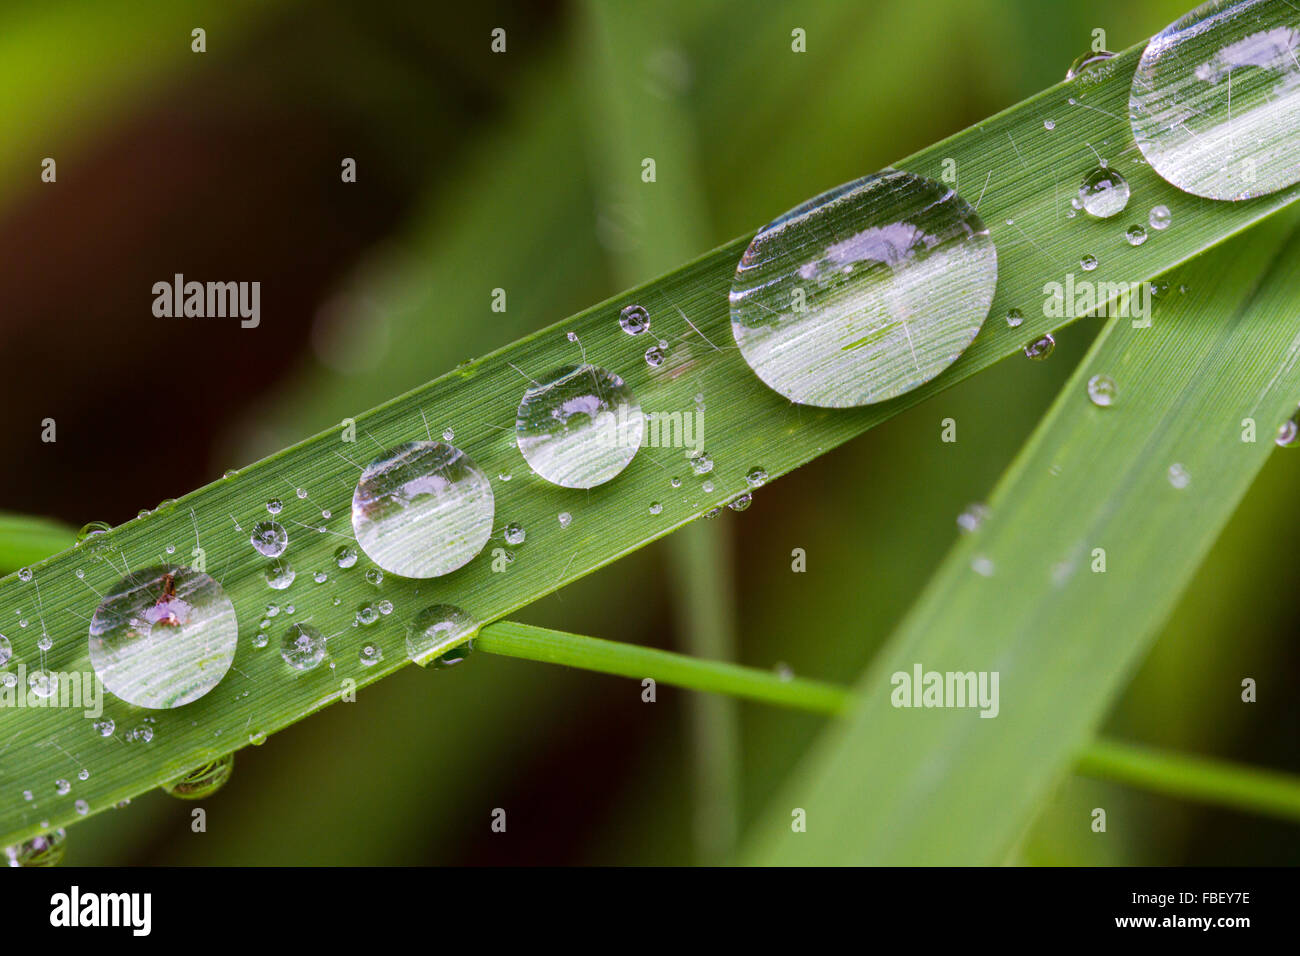 Water drops lined up on a blade of grass - Stock Image